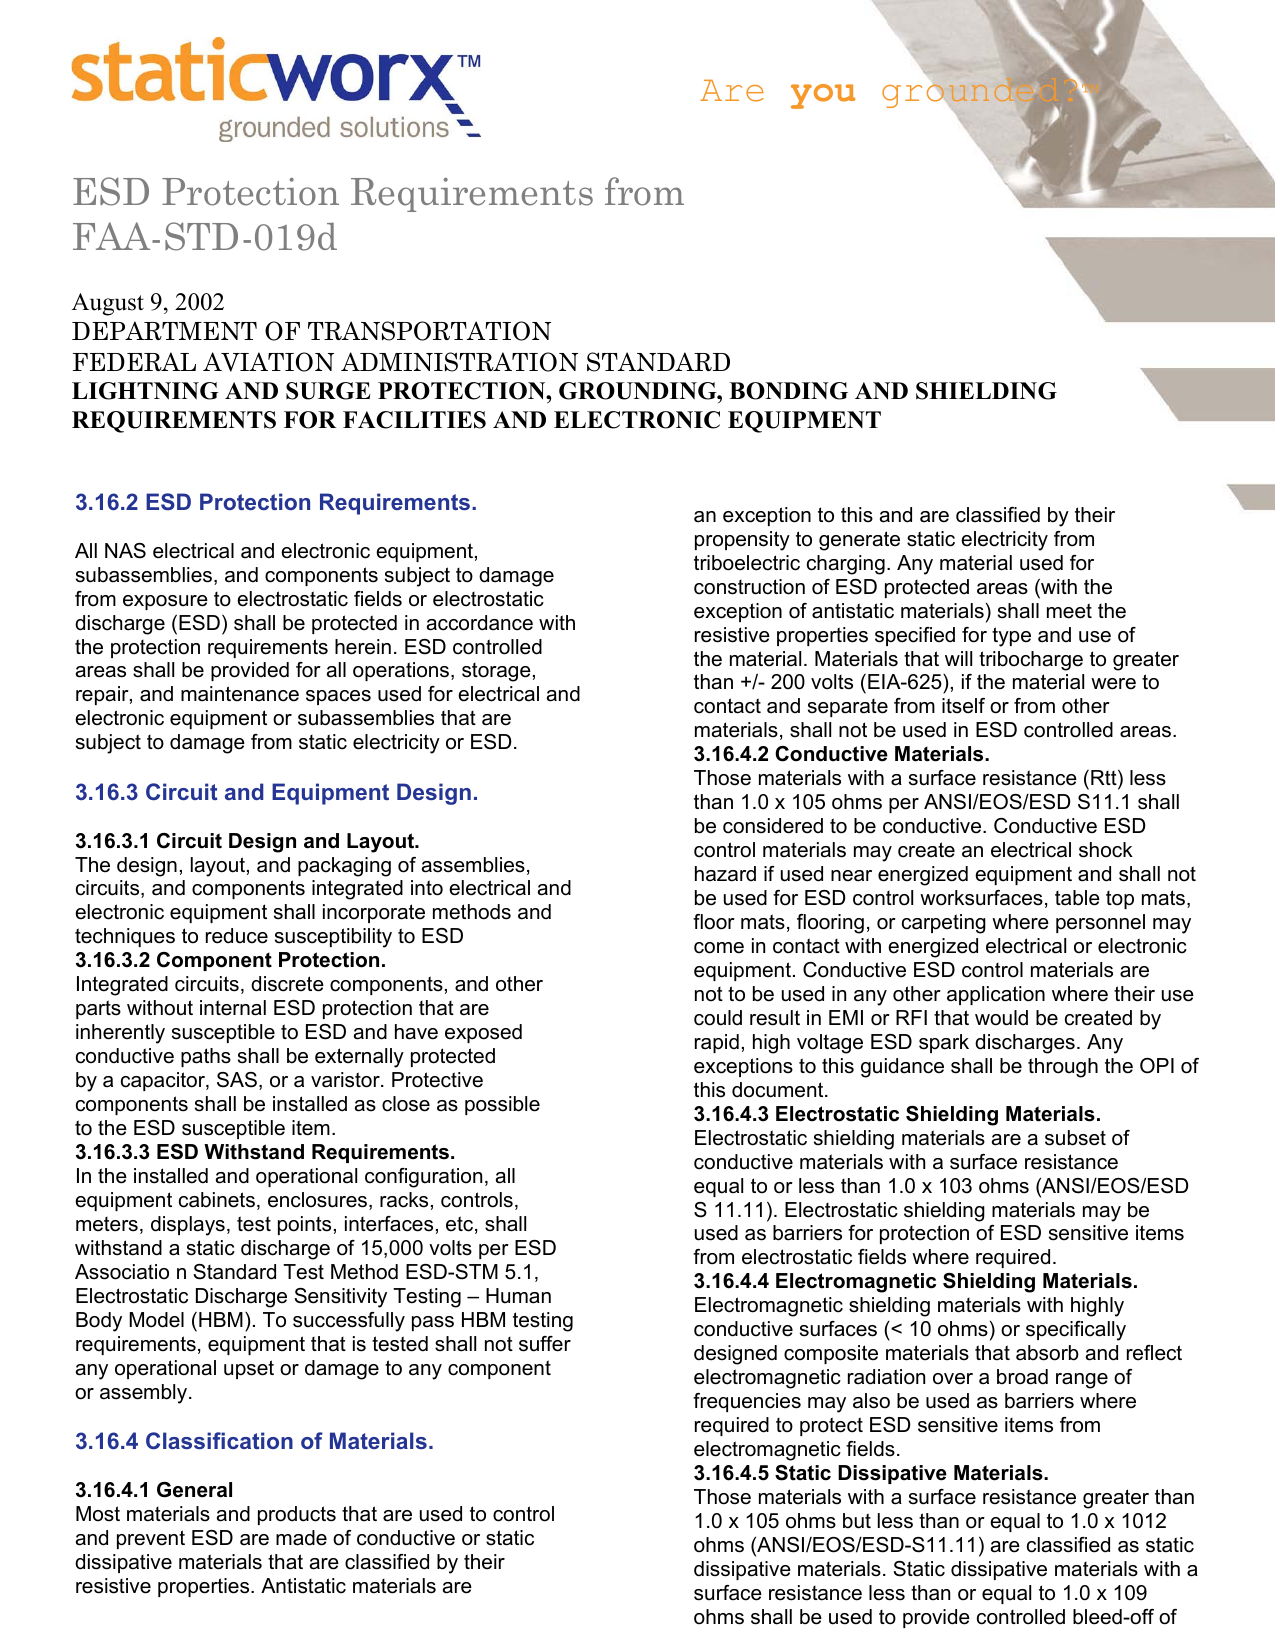 ESD Protection Requirements from FAA-STD-019d